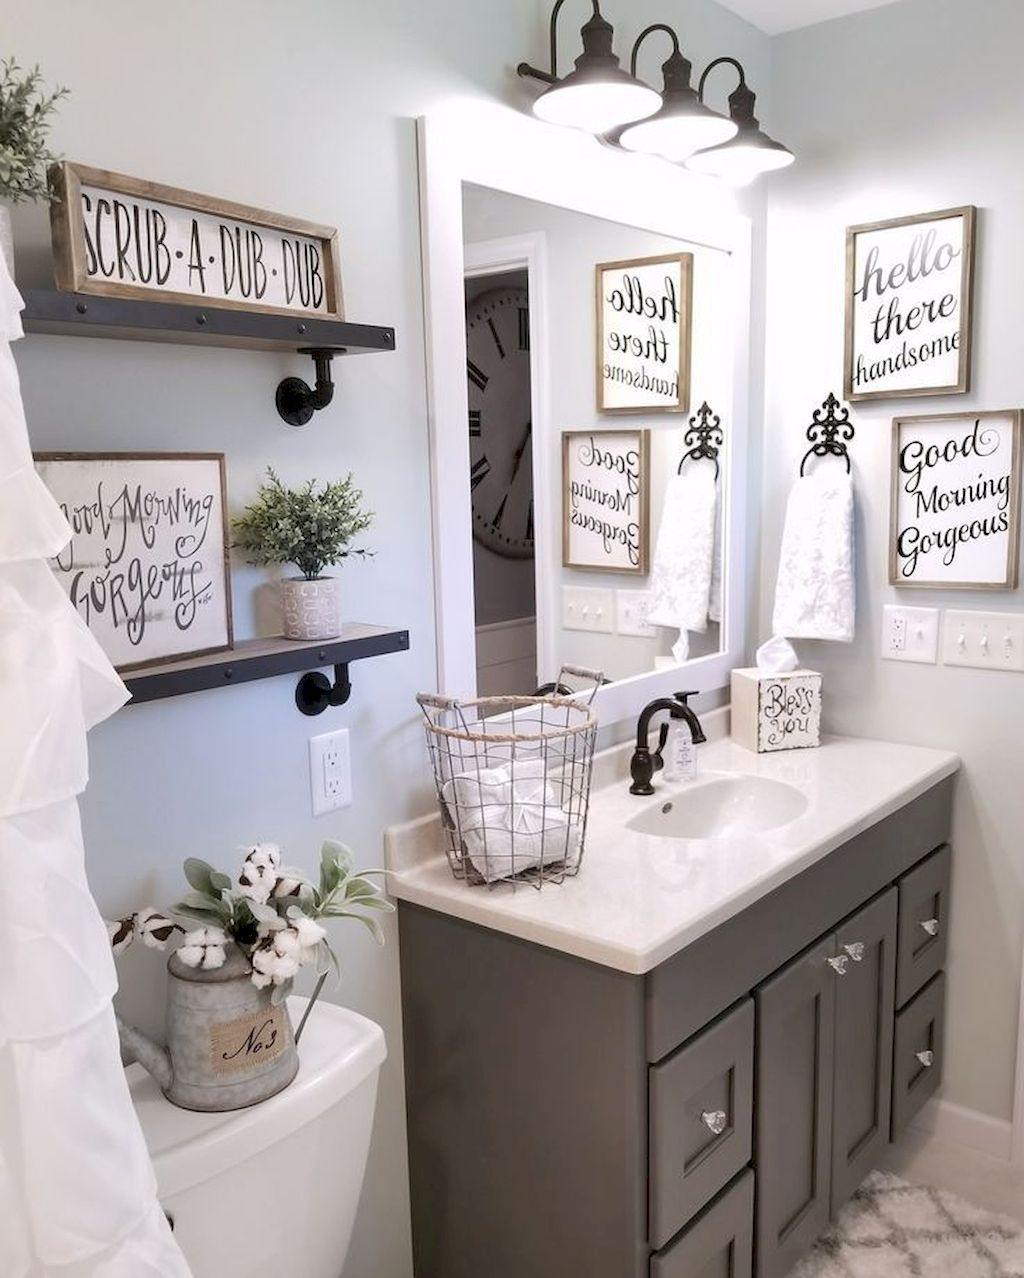 Delicieux Gorgeous 110 Spectacular Farmhouse Bathroom Decor Ideas  Https://roomadness.com/2017